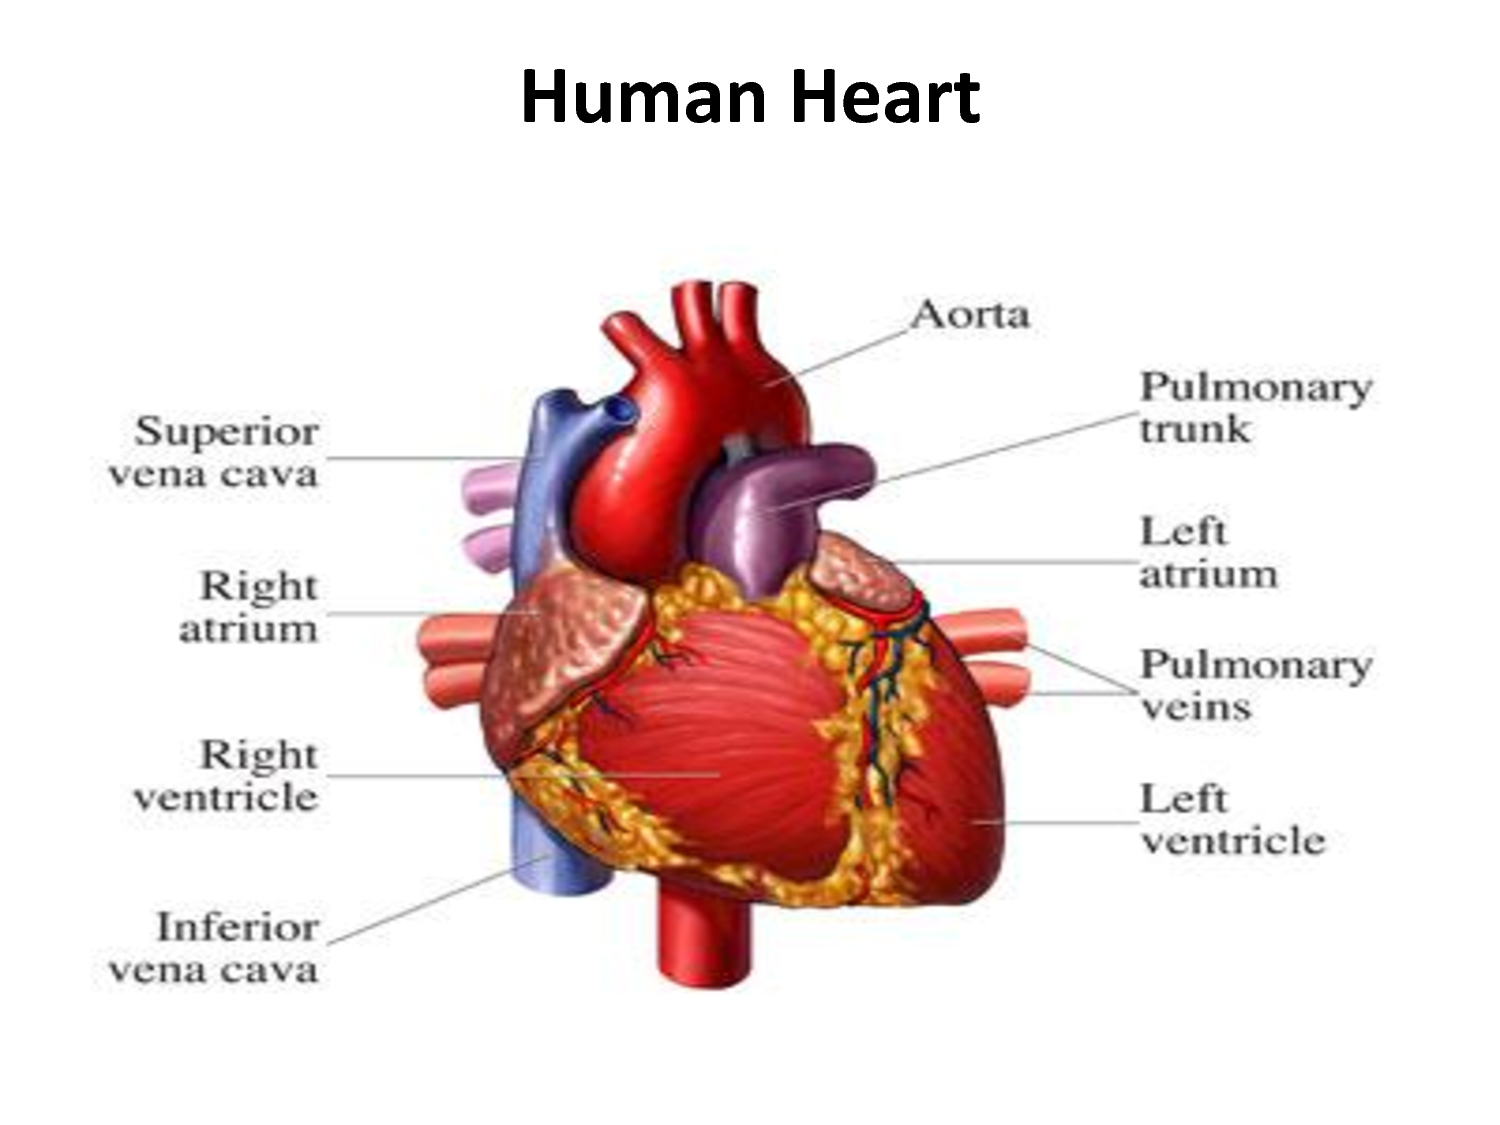 Gross Anatomy Of Human Heart Govt Exams